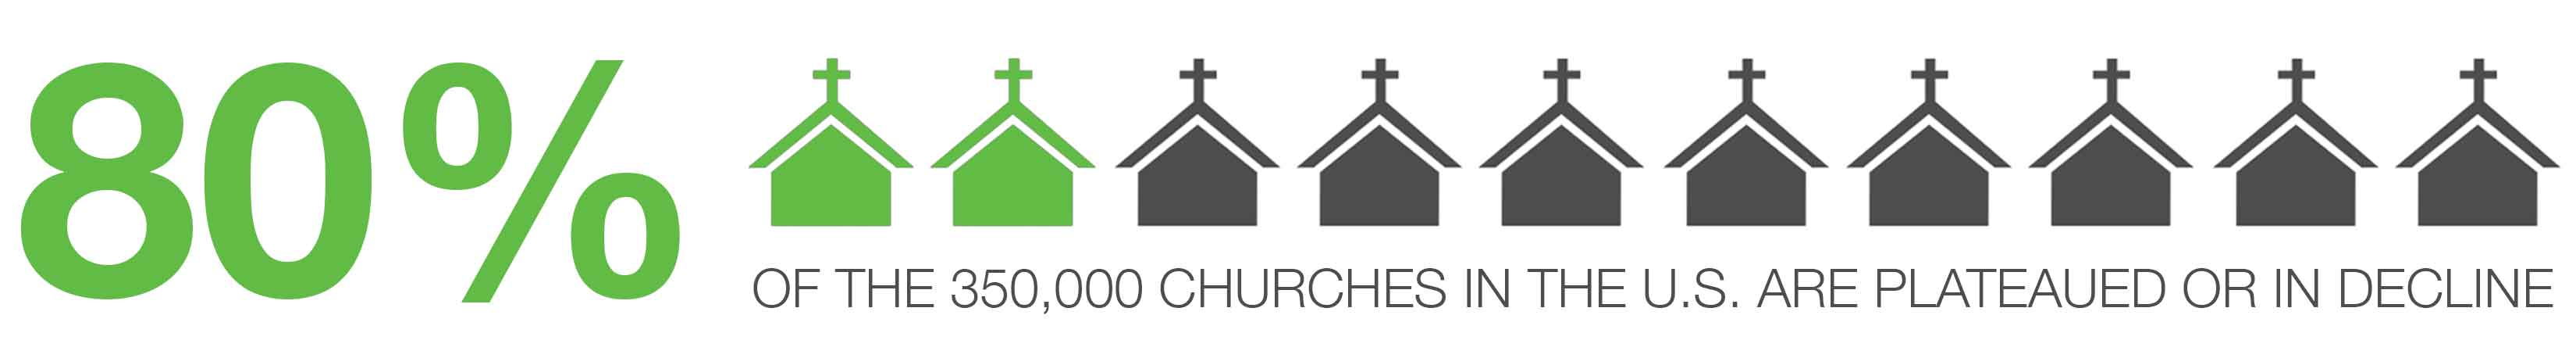 80% of the 350,000 churches in the U.S. are plateaued or in decline.